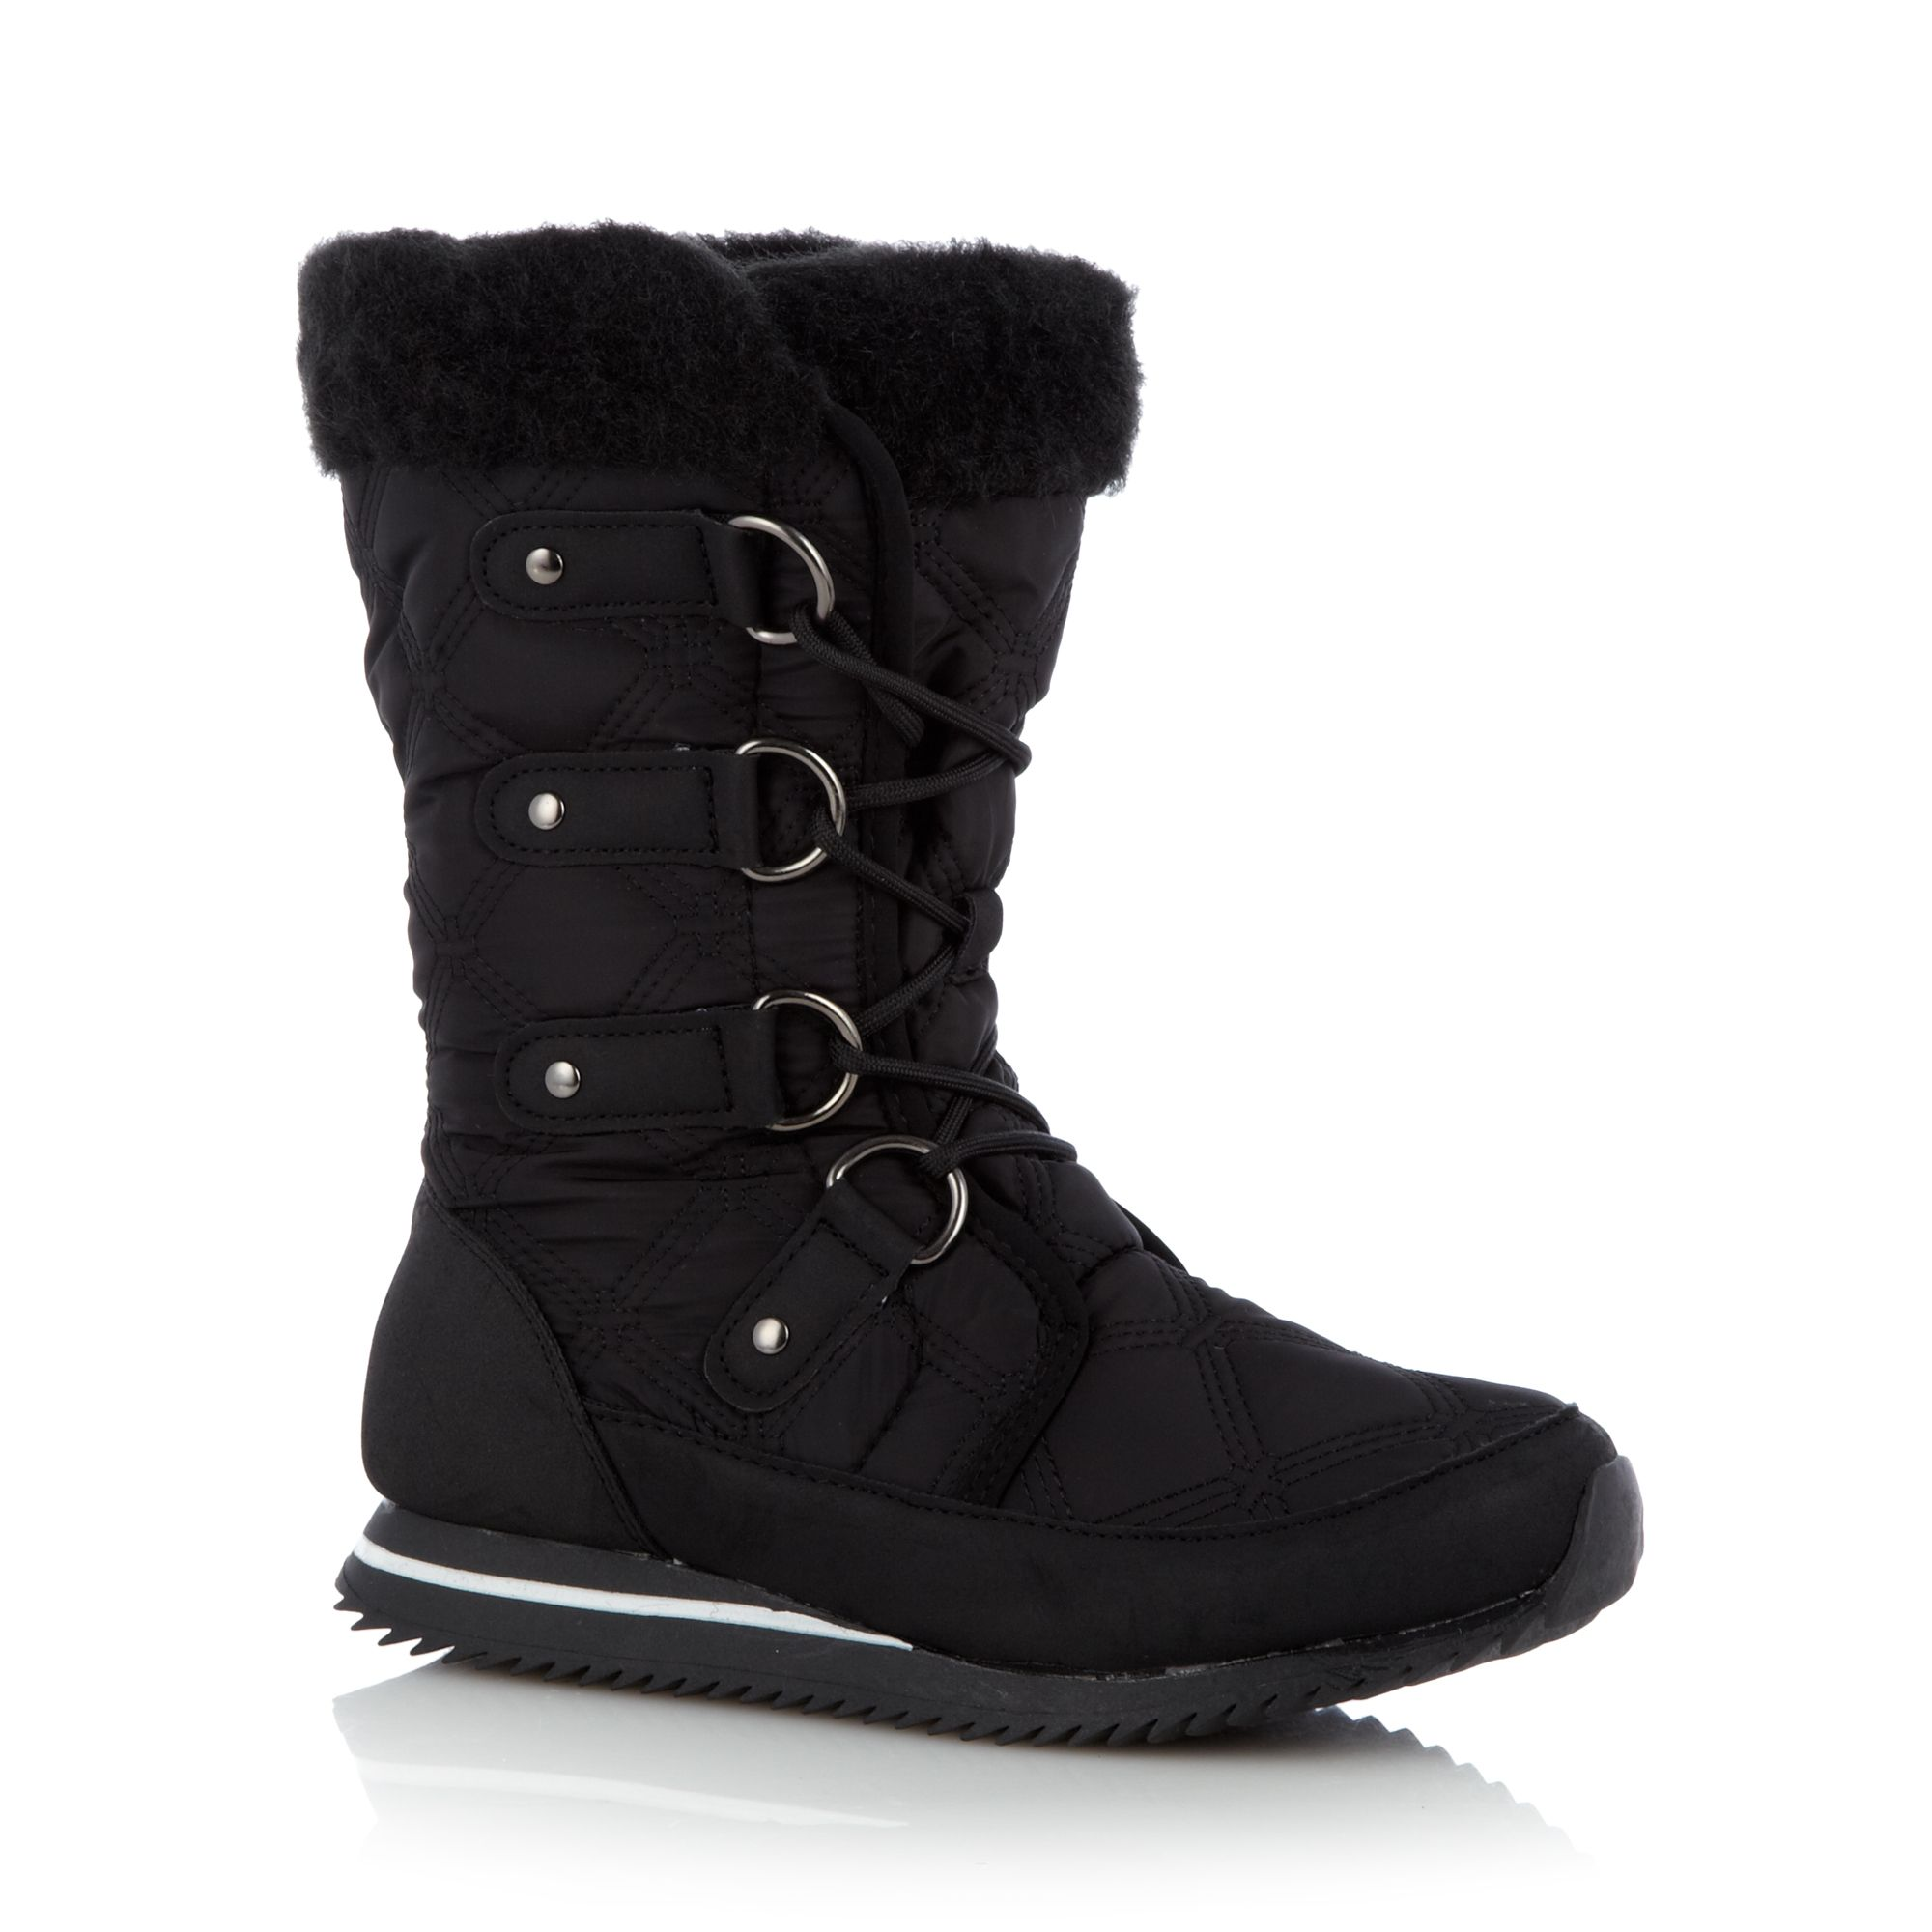 Mantaray Womens Black Quilted Calf Length Snow Boots From